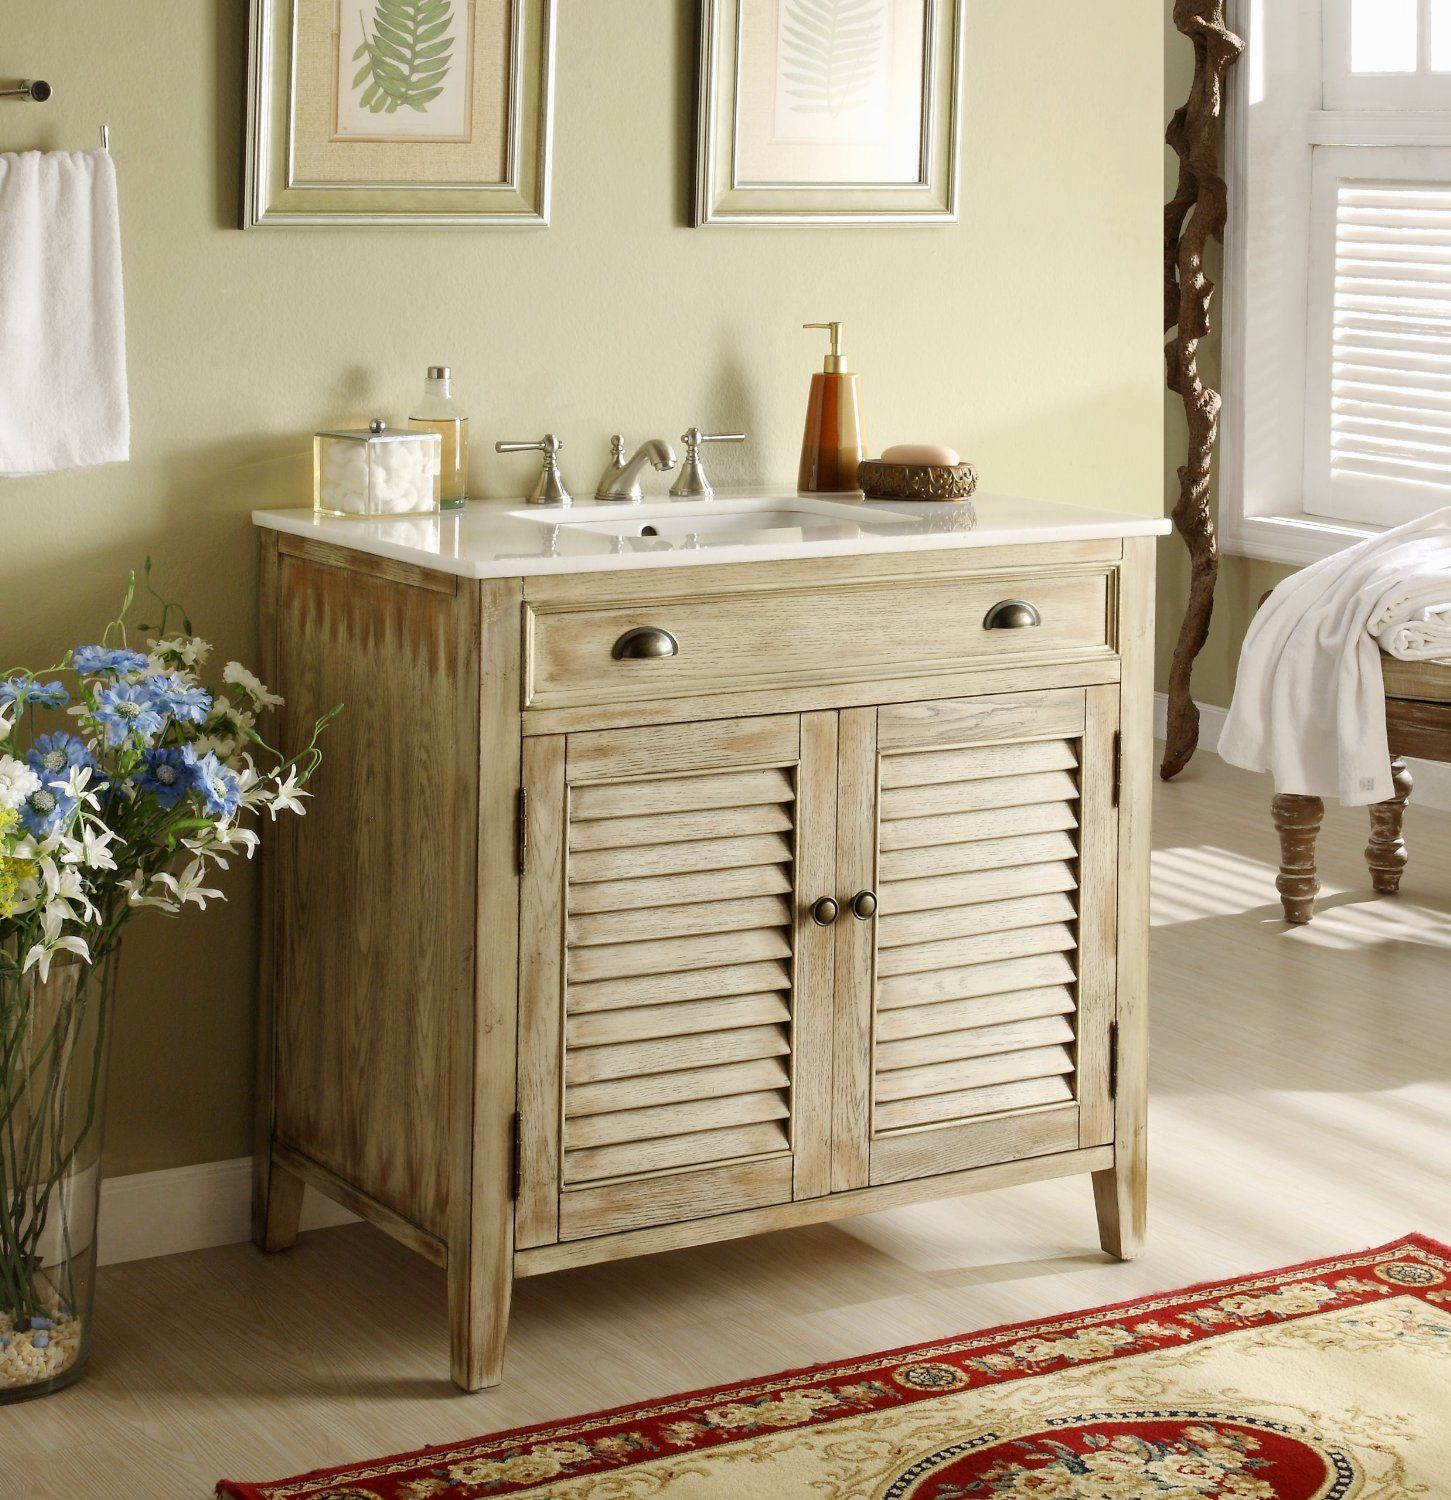 Find Furniture Like Restoration Hardware | Diy bathroom vanity ...